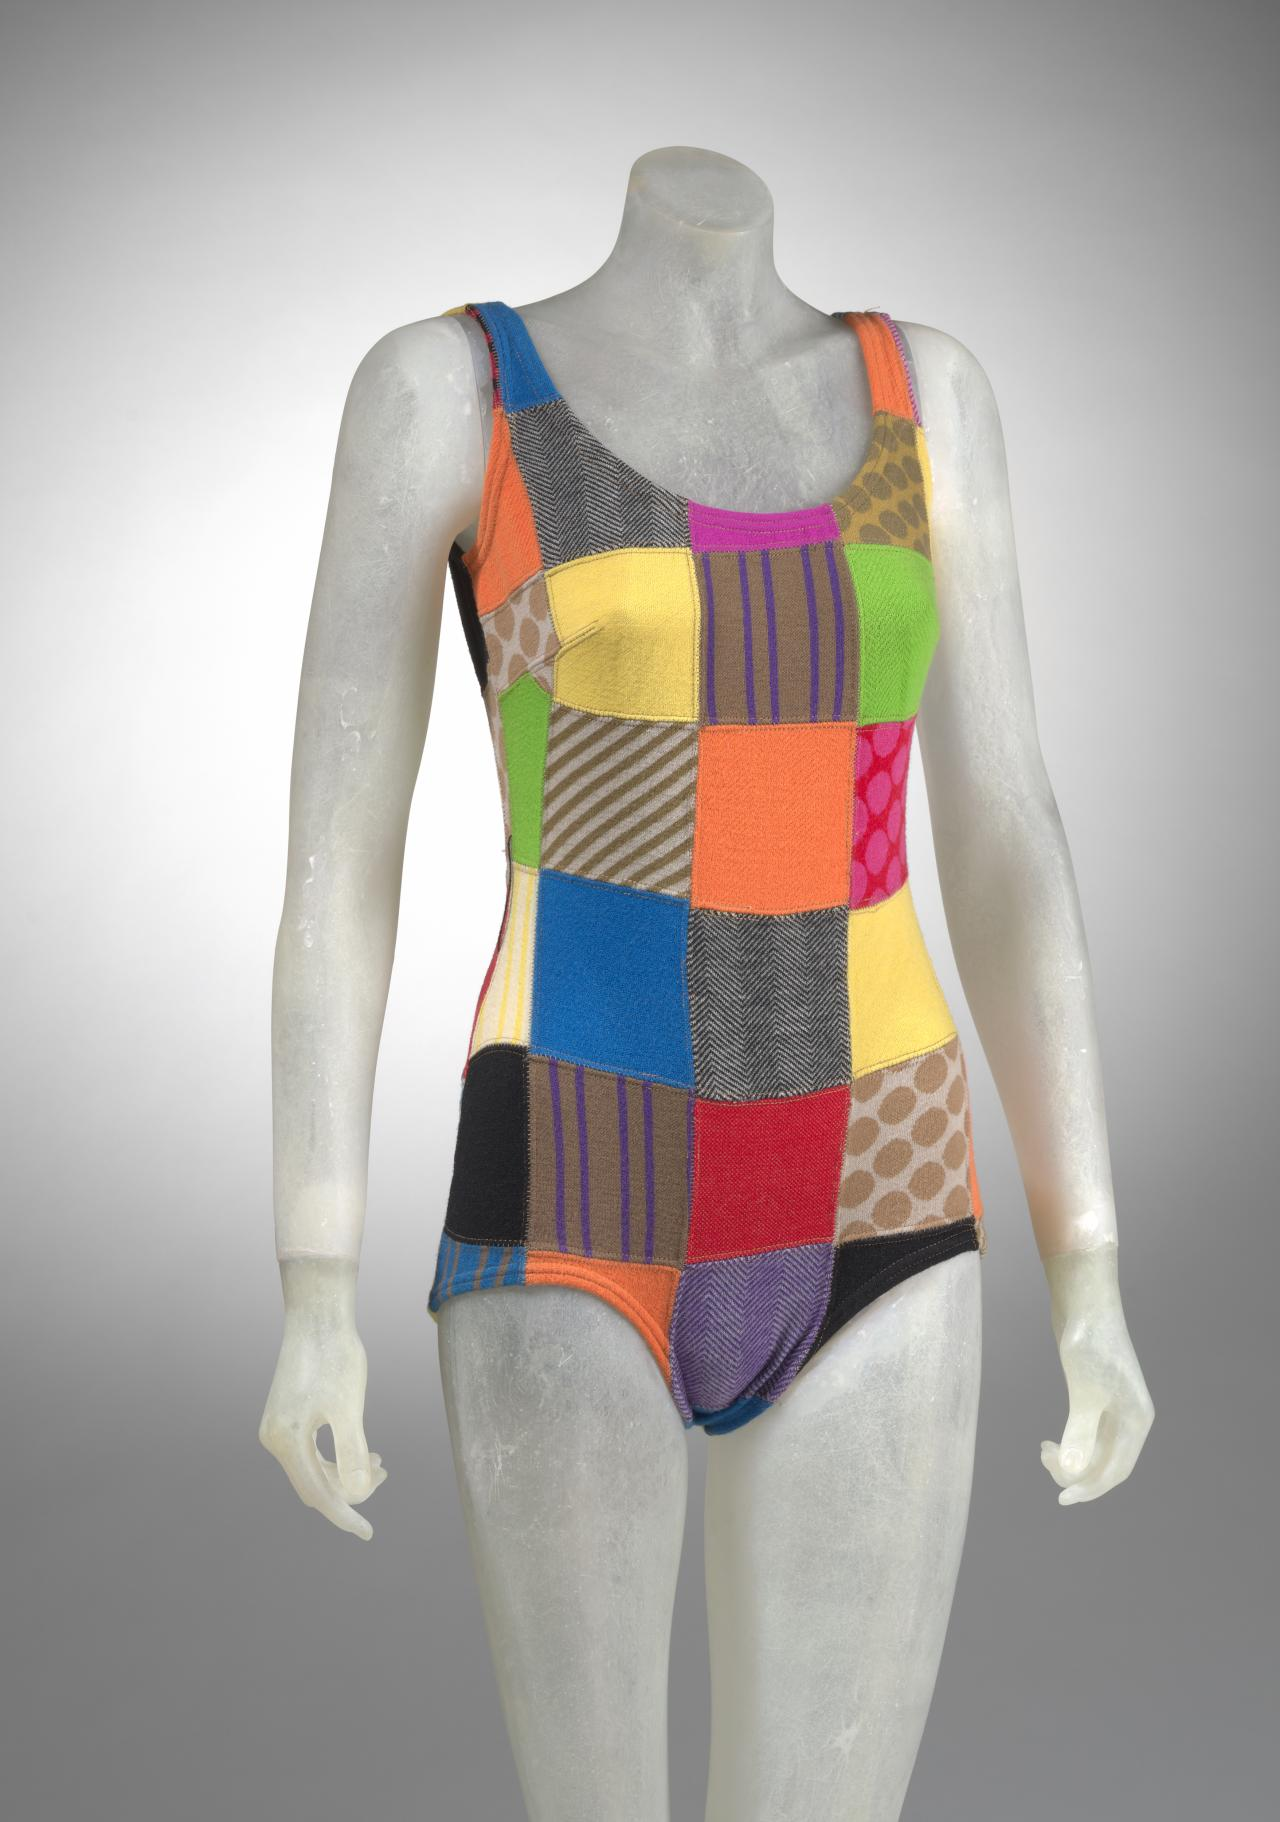 Patchwork swimsuit